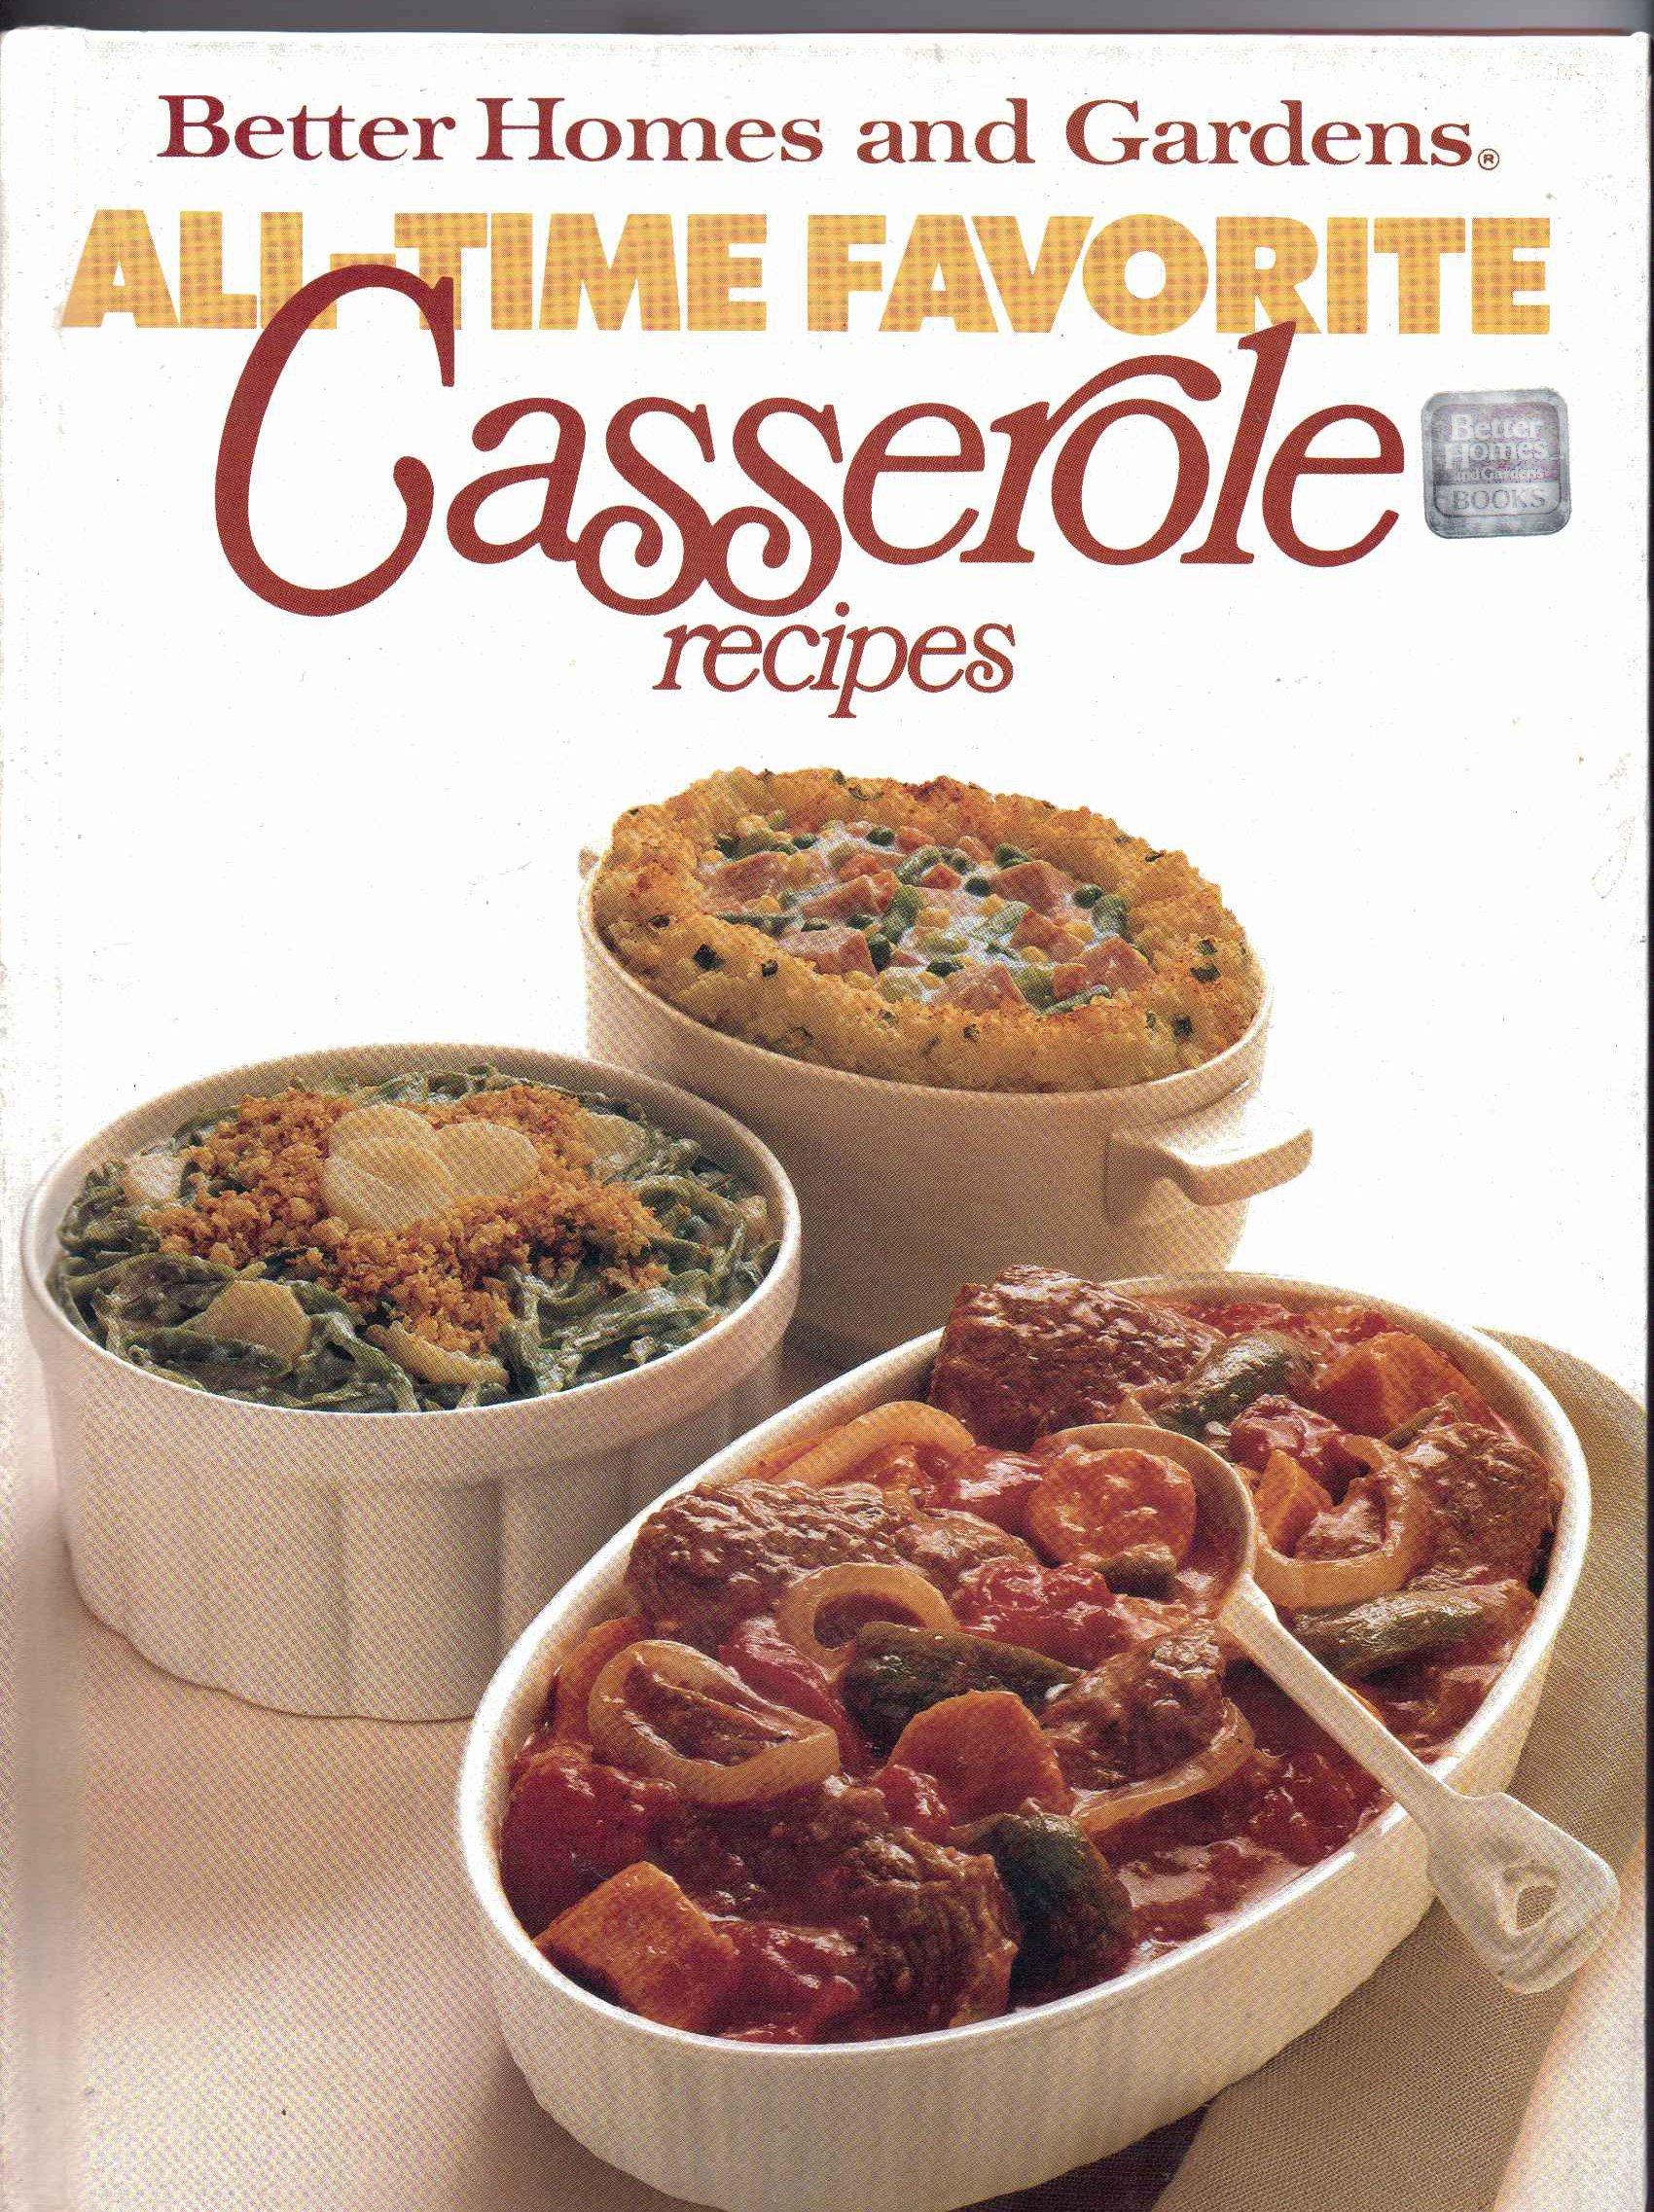 Better Homes and Gardens All Time Favorite Casserole Recipes